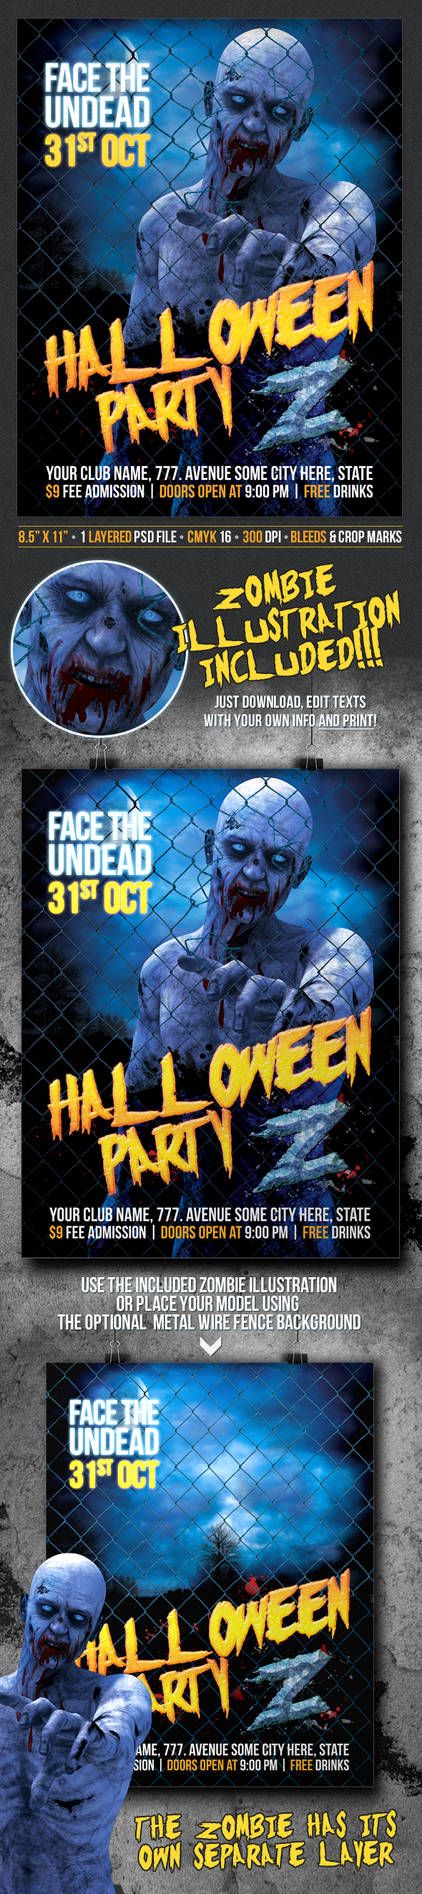 Halloween Party Z Poster / Flyer design template